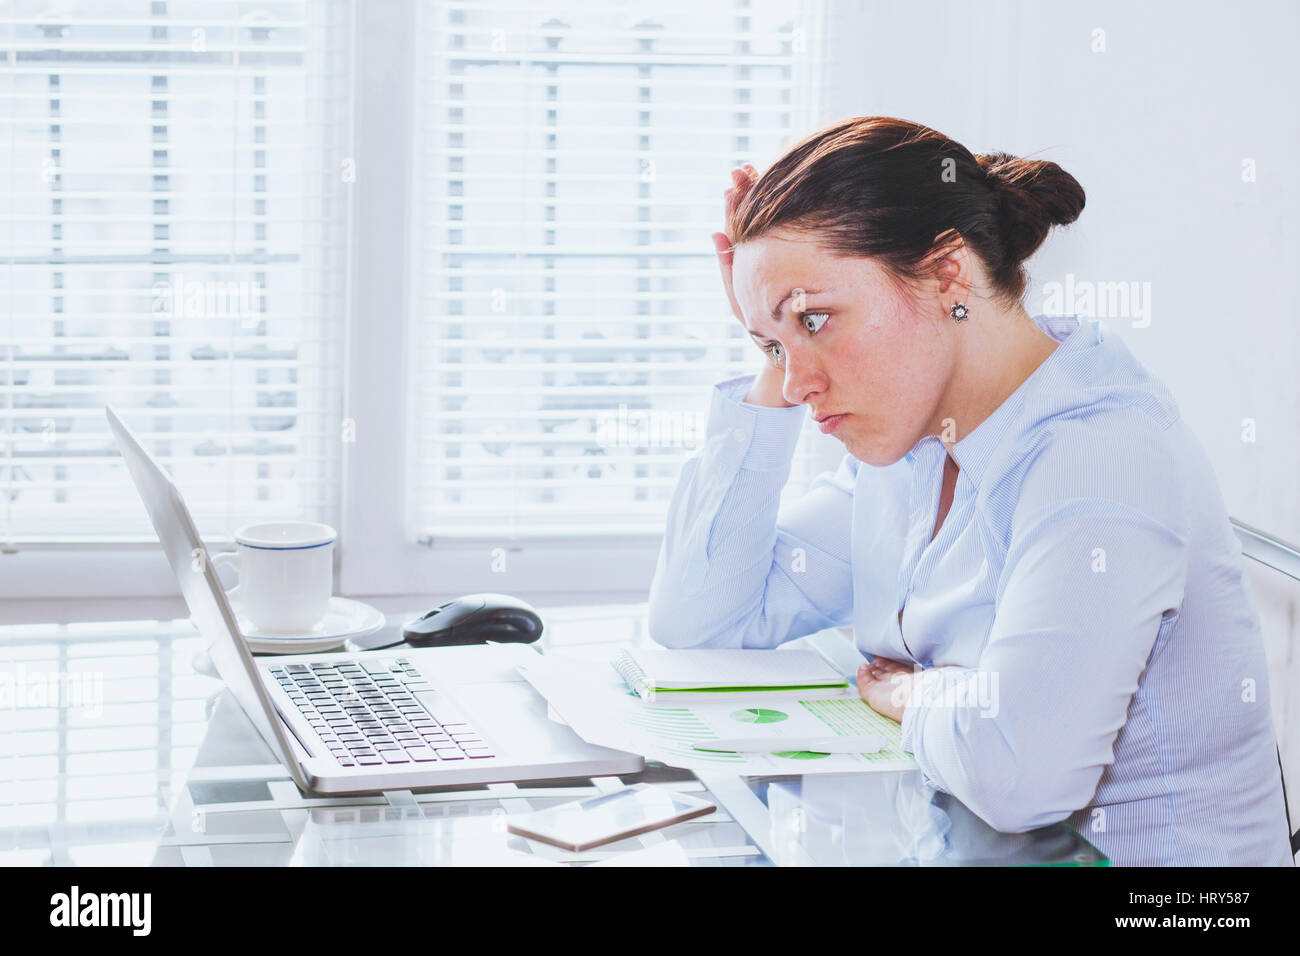 angry furious woman in modern business office looking at screen of laptop computer, anger, annoyed businesswoman - Stock Image